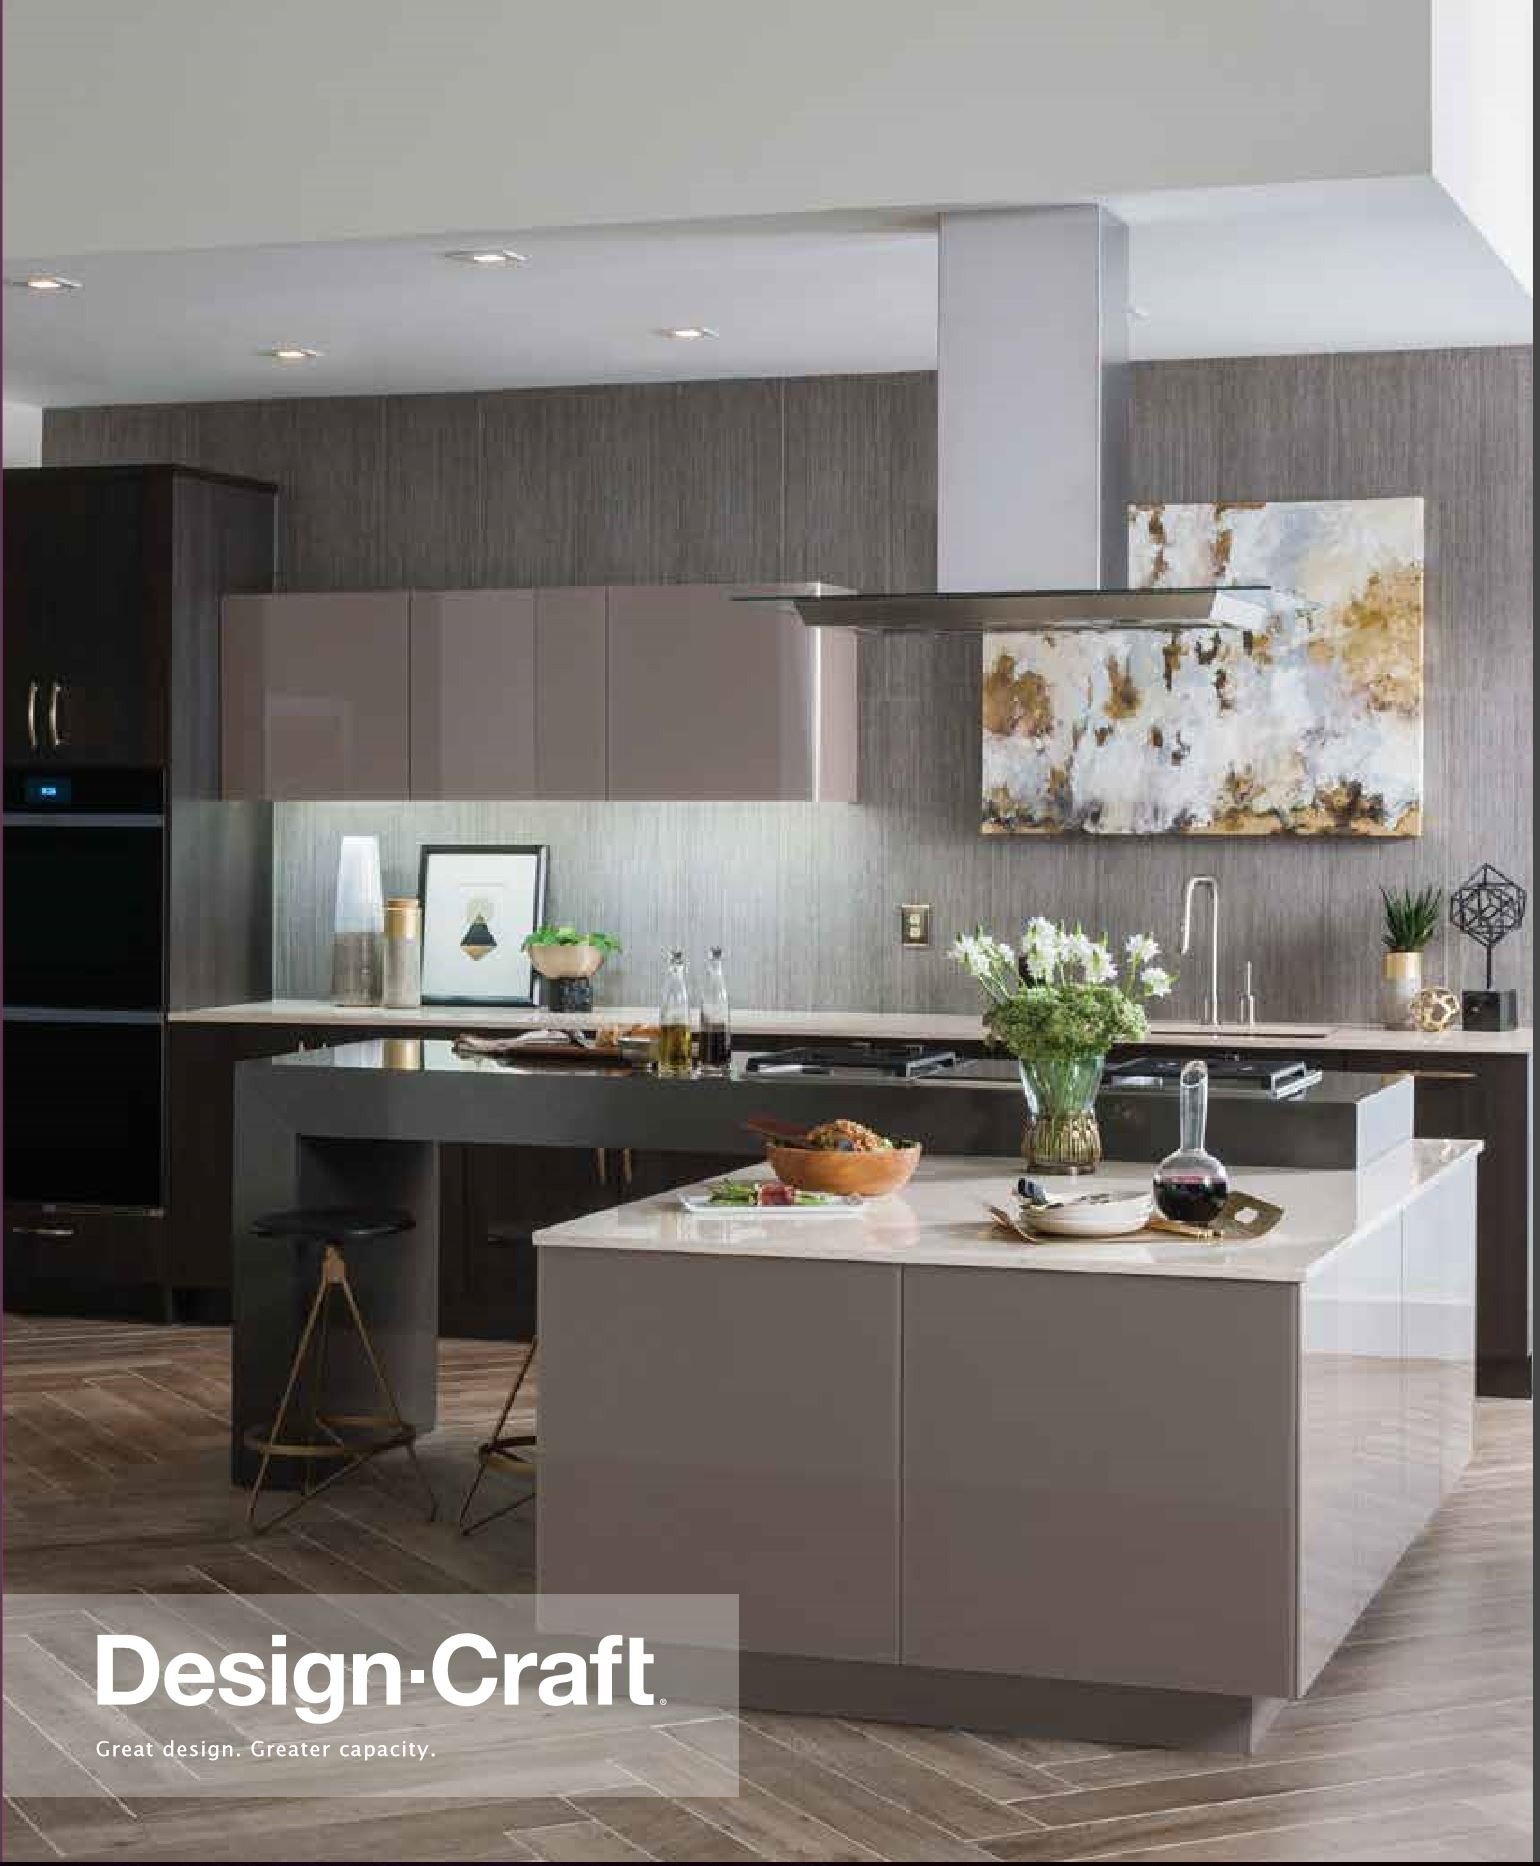 Click to See the Design-Craft Catalog